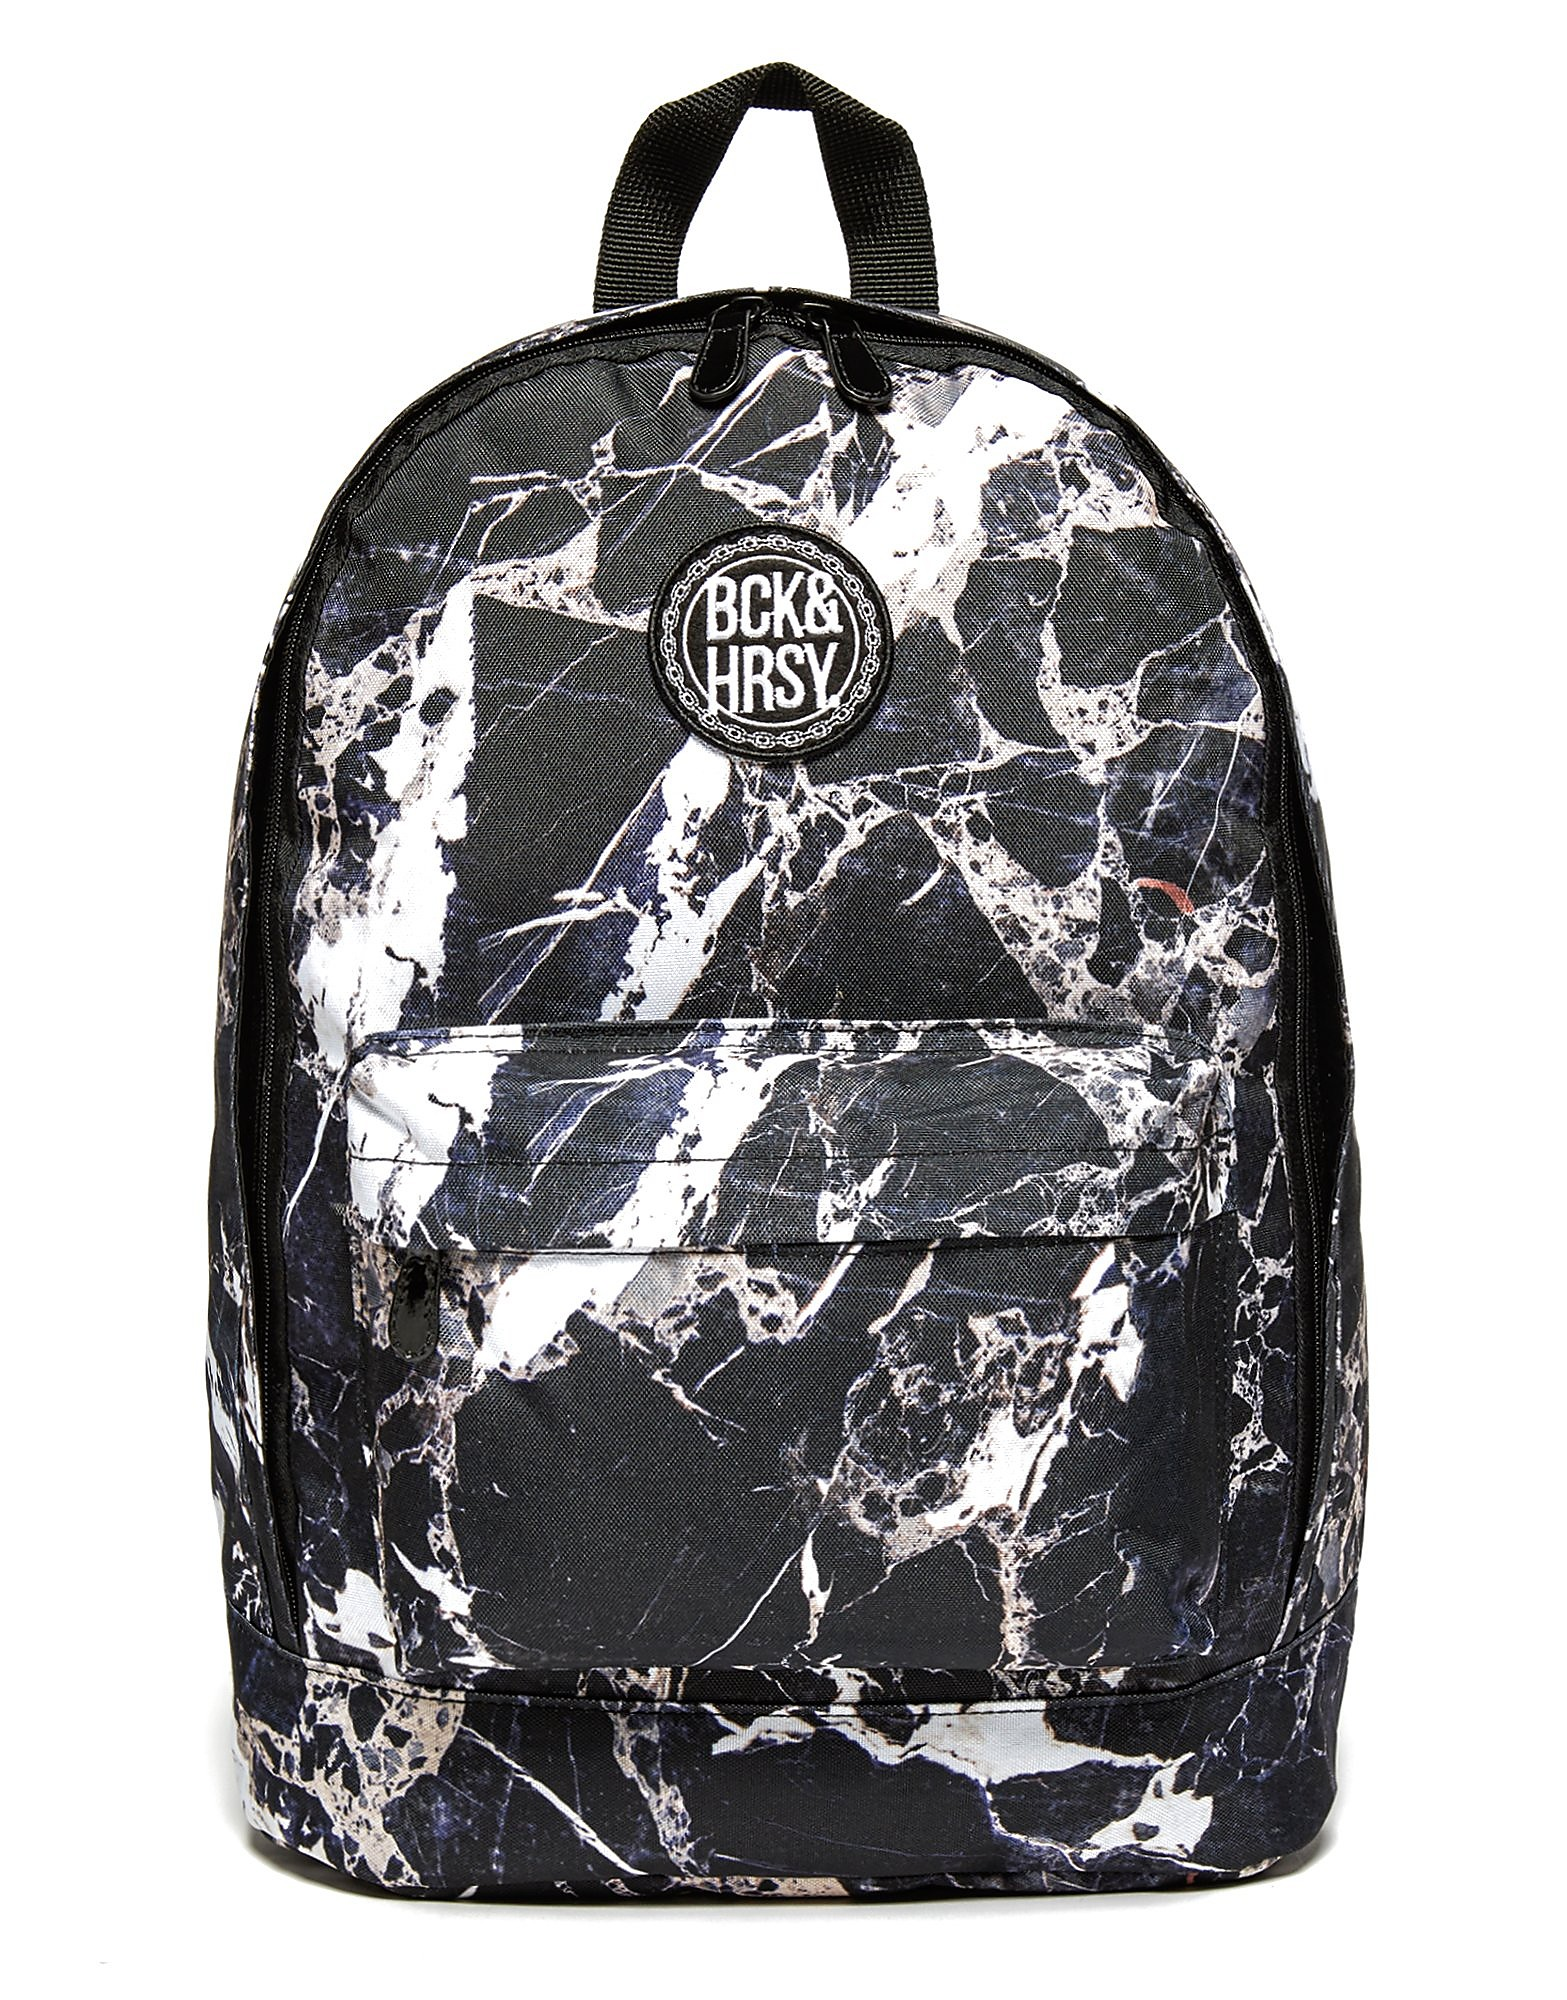 Beck and Hersey Tiro Marble Backpack